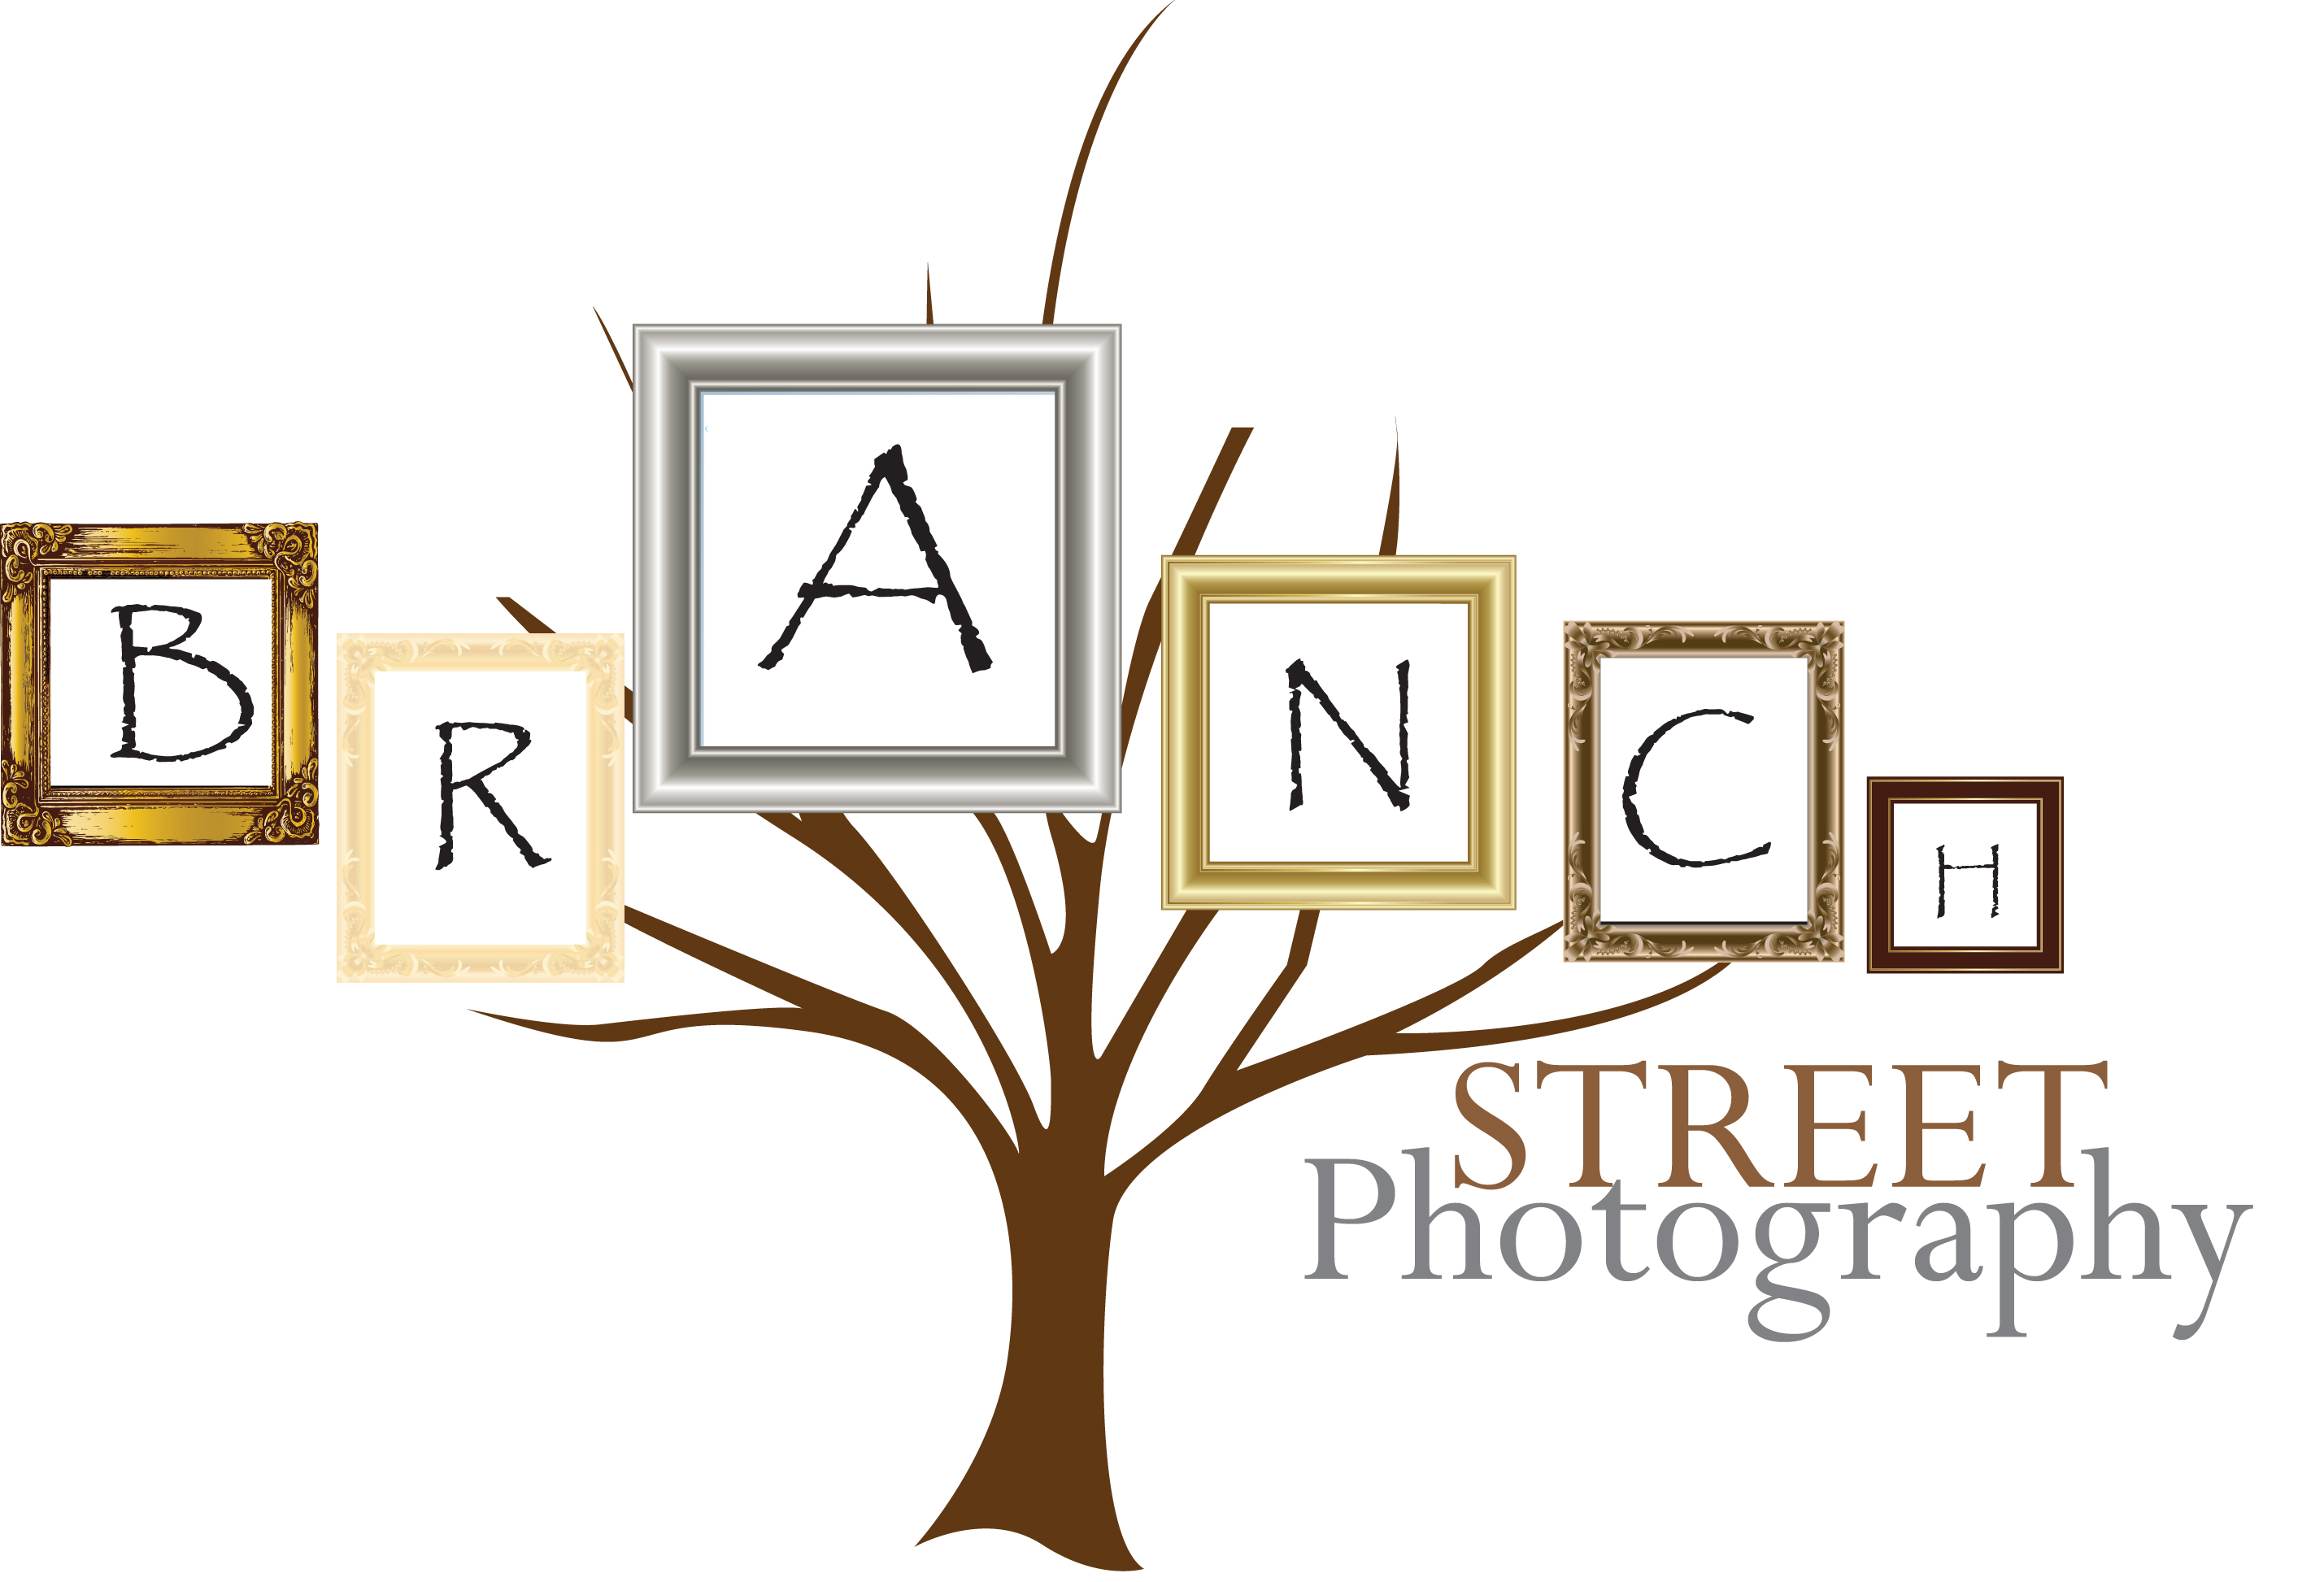 Branch Street Photography